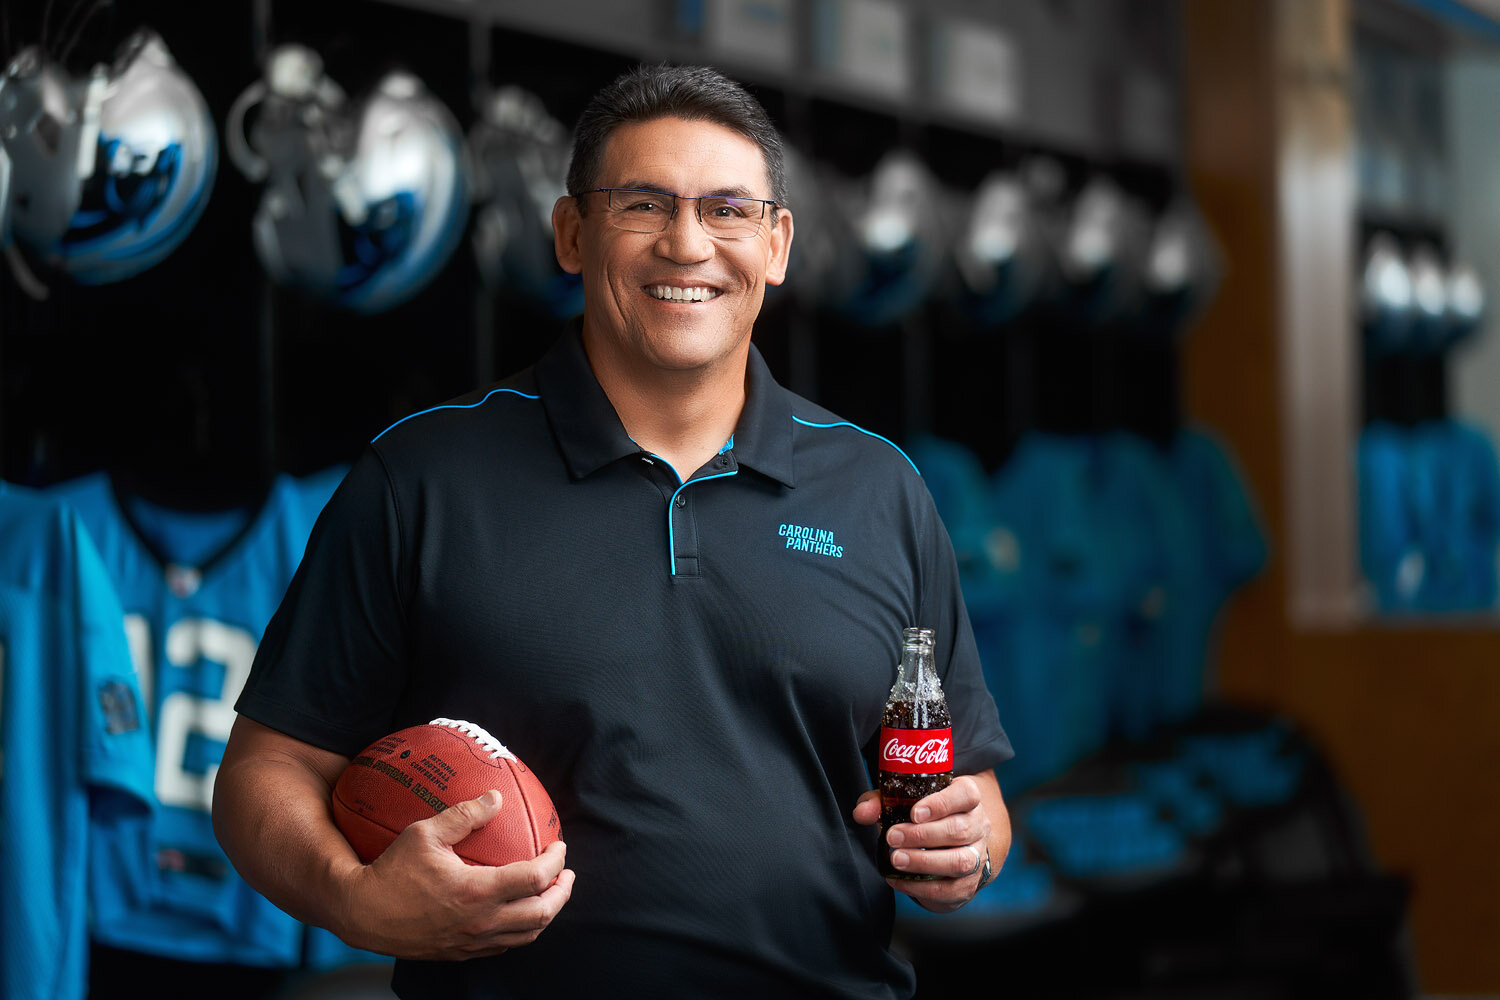 hales photo-coca-cola-carolina panthers-charlotte photography advertising marketing campaign production commercial editorial photographer atlanta-0017.jpg